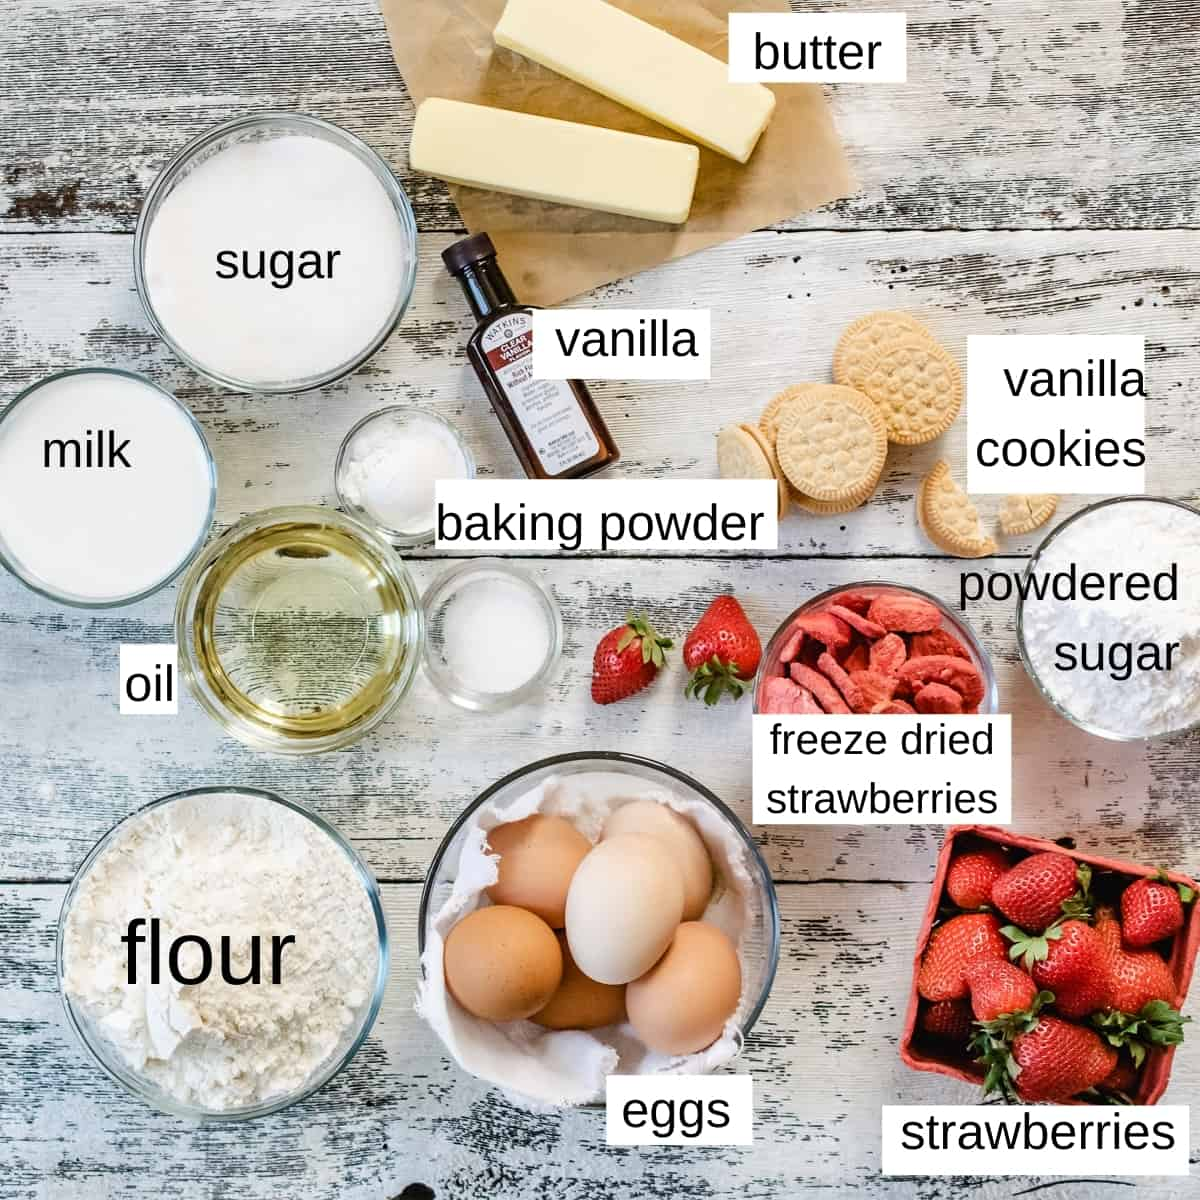 Photo of ingredients needed to make strawberry layer cake.